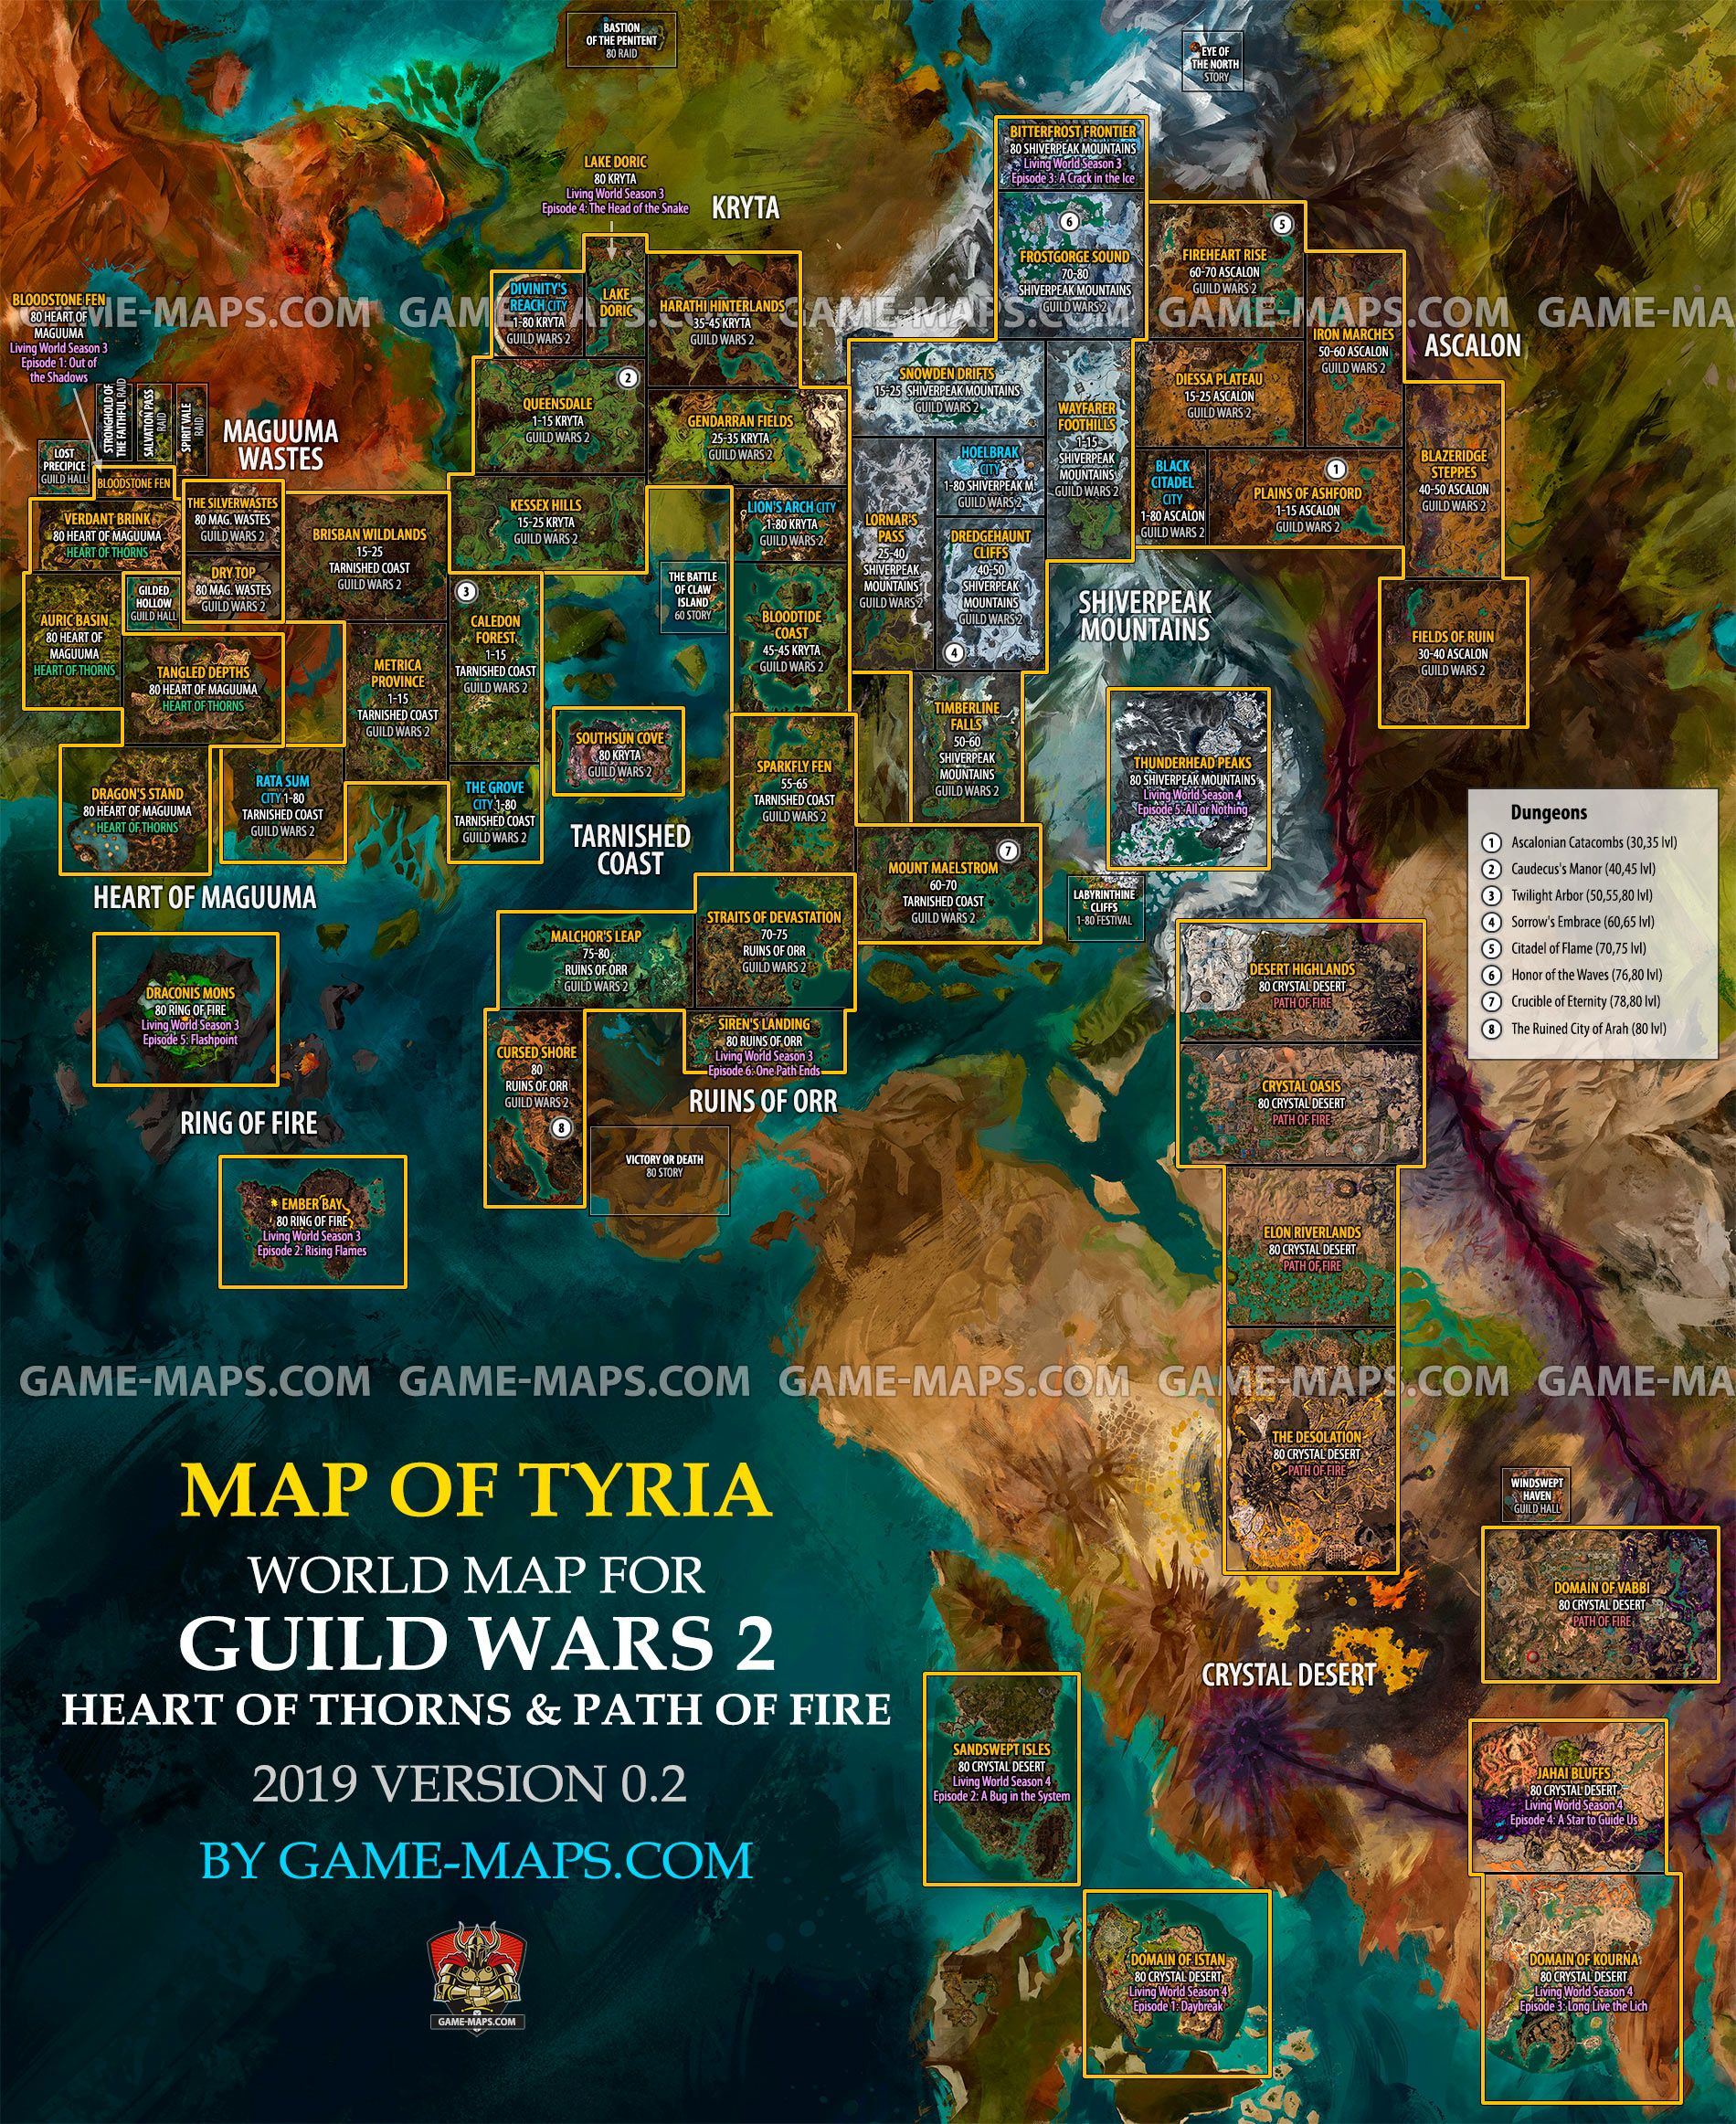 Full World Map For Guild Wars 2 Gw2 Heart Of Thorns Gw2 Path Of